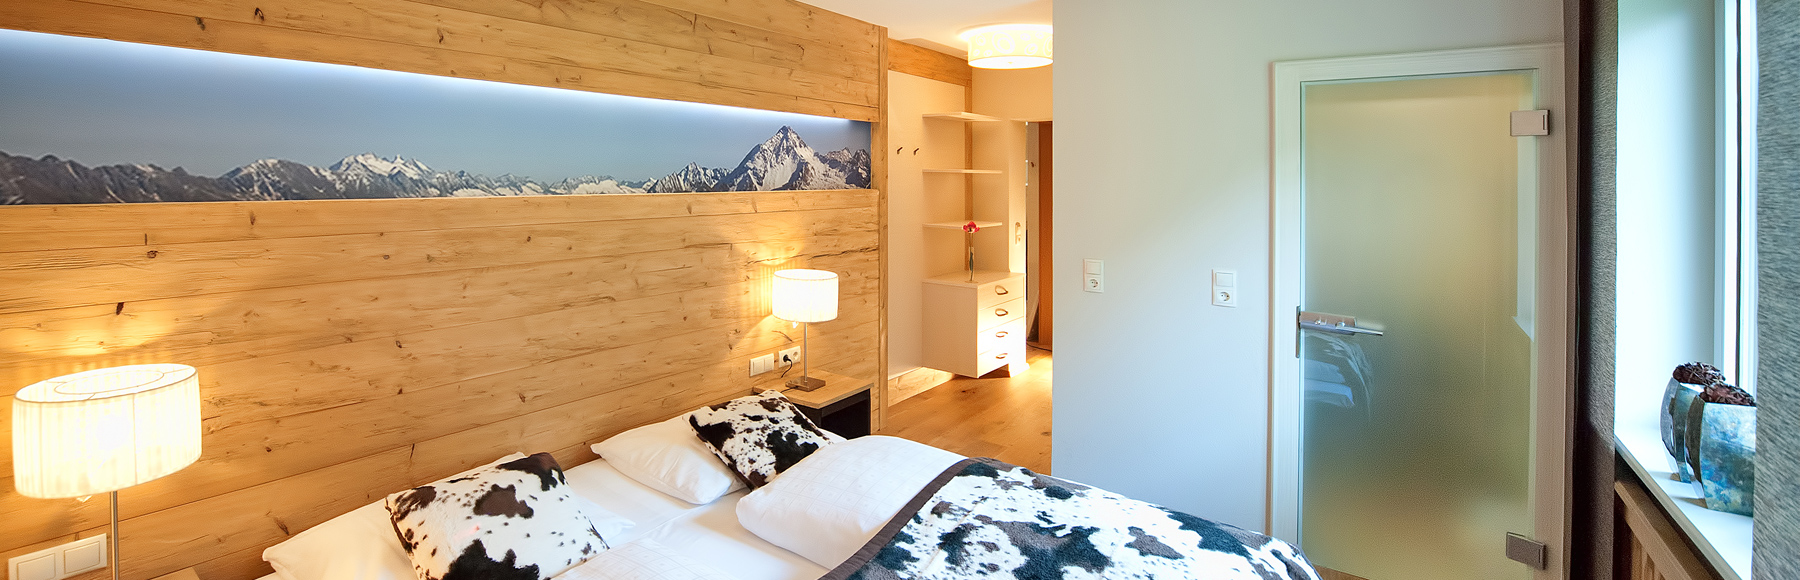 appartement f r 4 5 personen in mayrhofen leo appartements. Black Bedroom Furniture Sets. Home Design Ideas